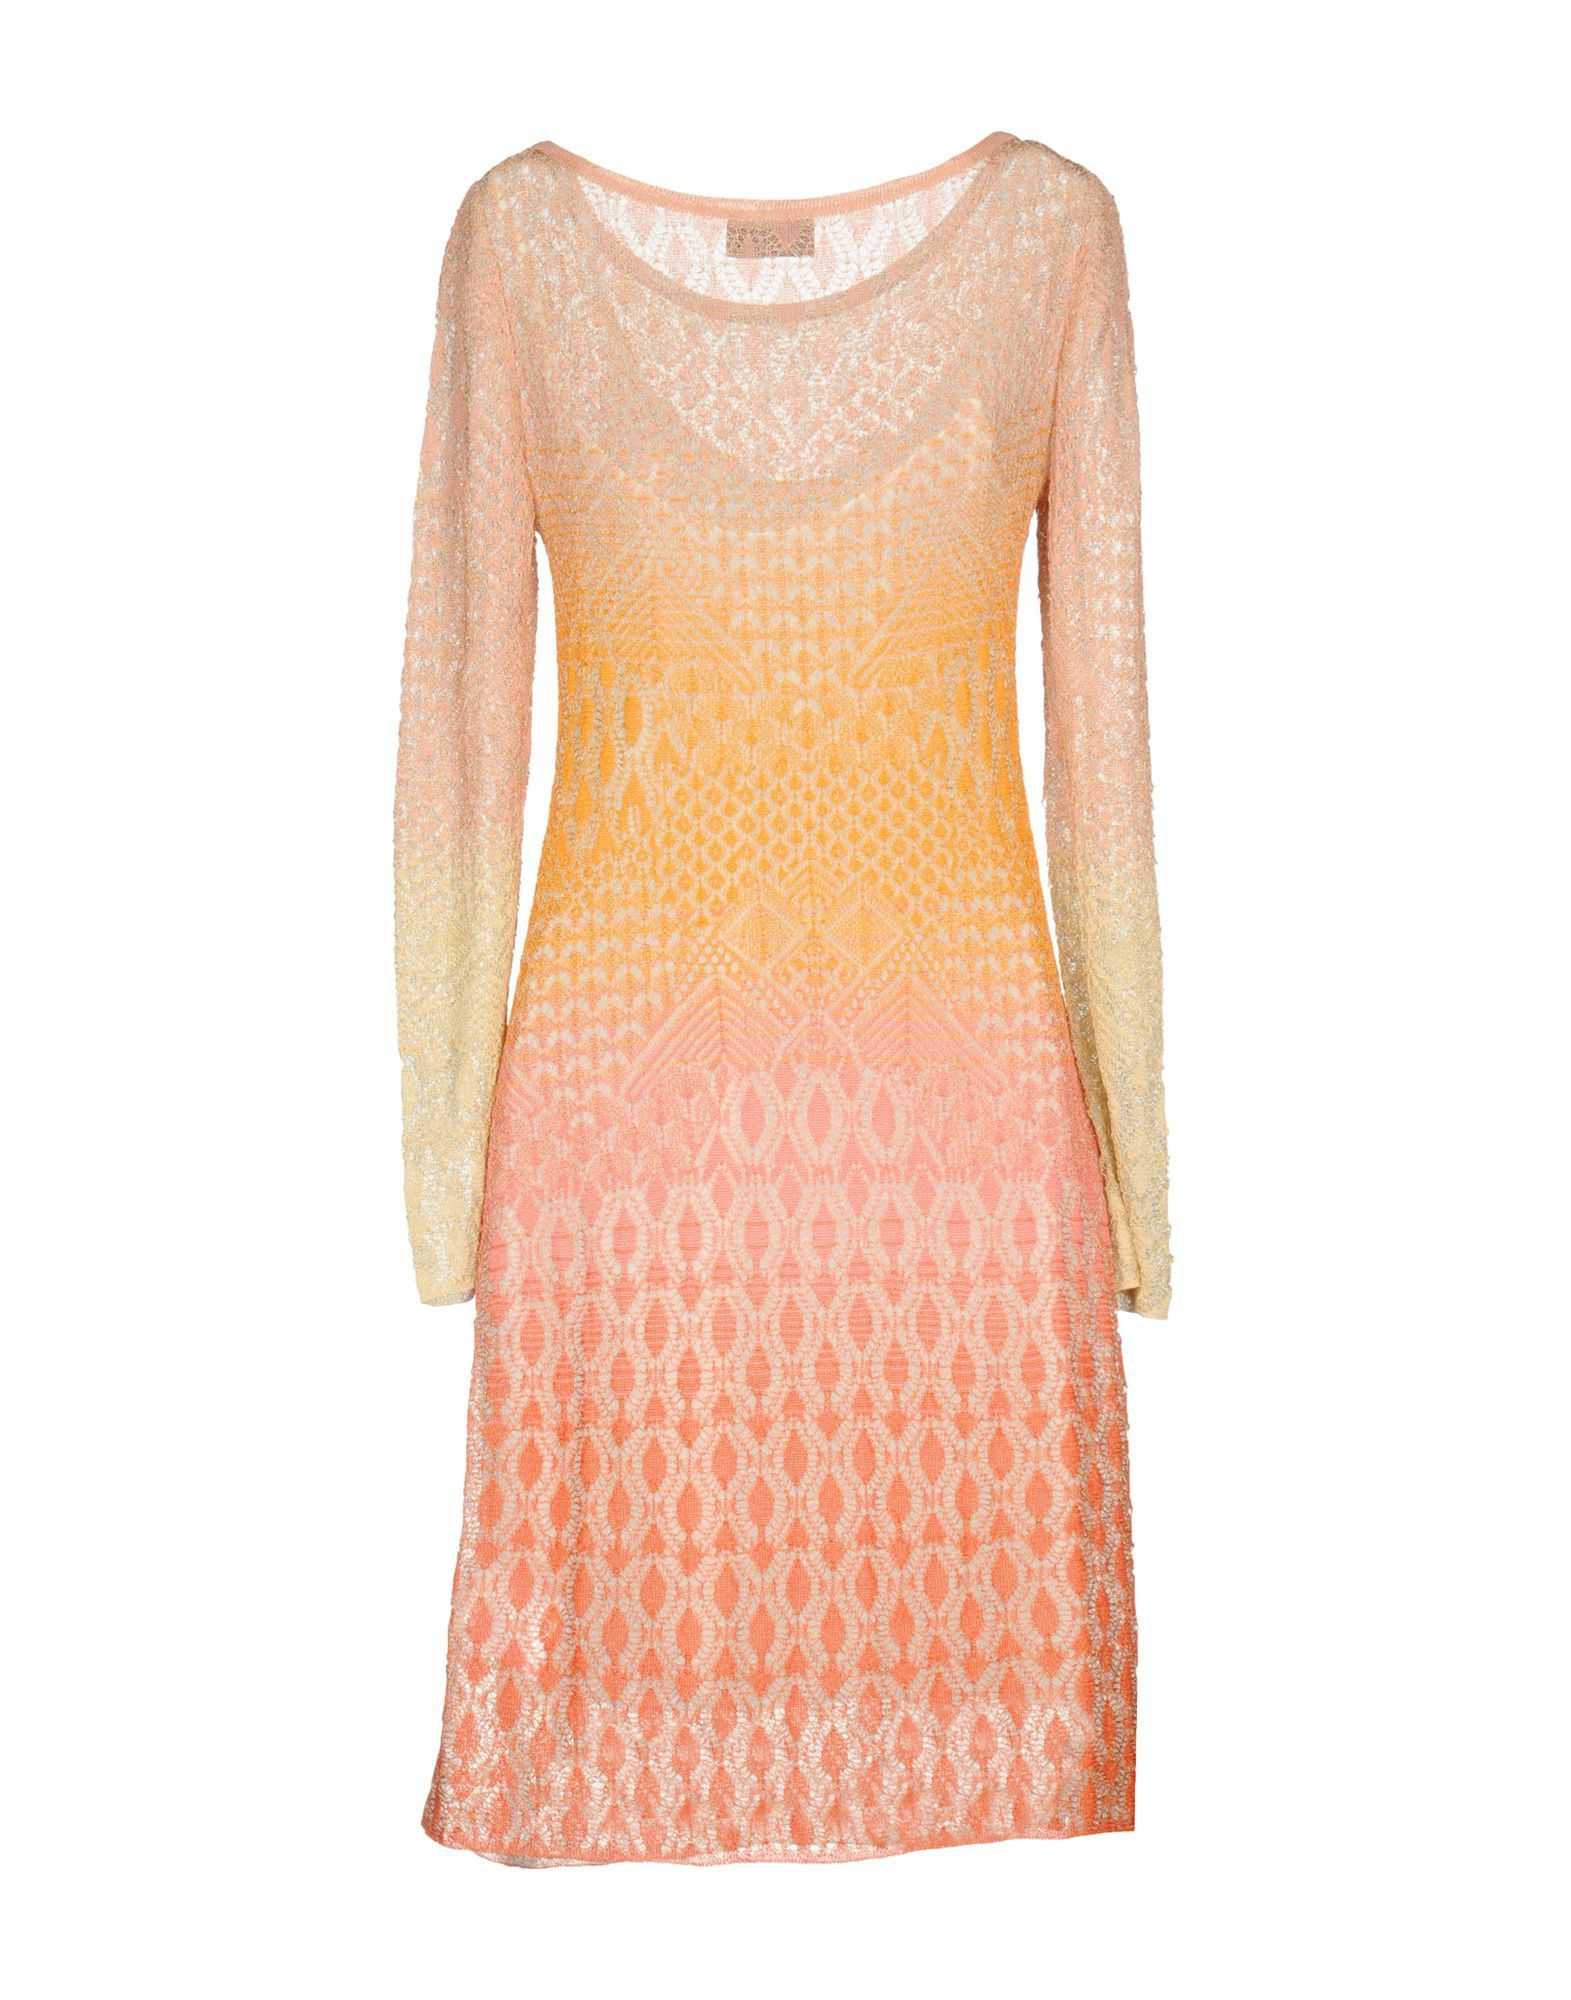 Missoni Pastel Pink Knit Long Sleeve Dress